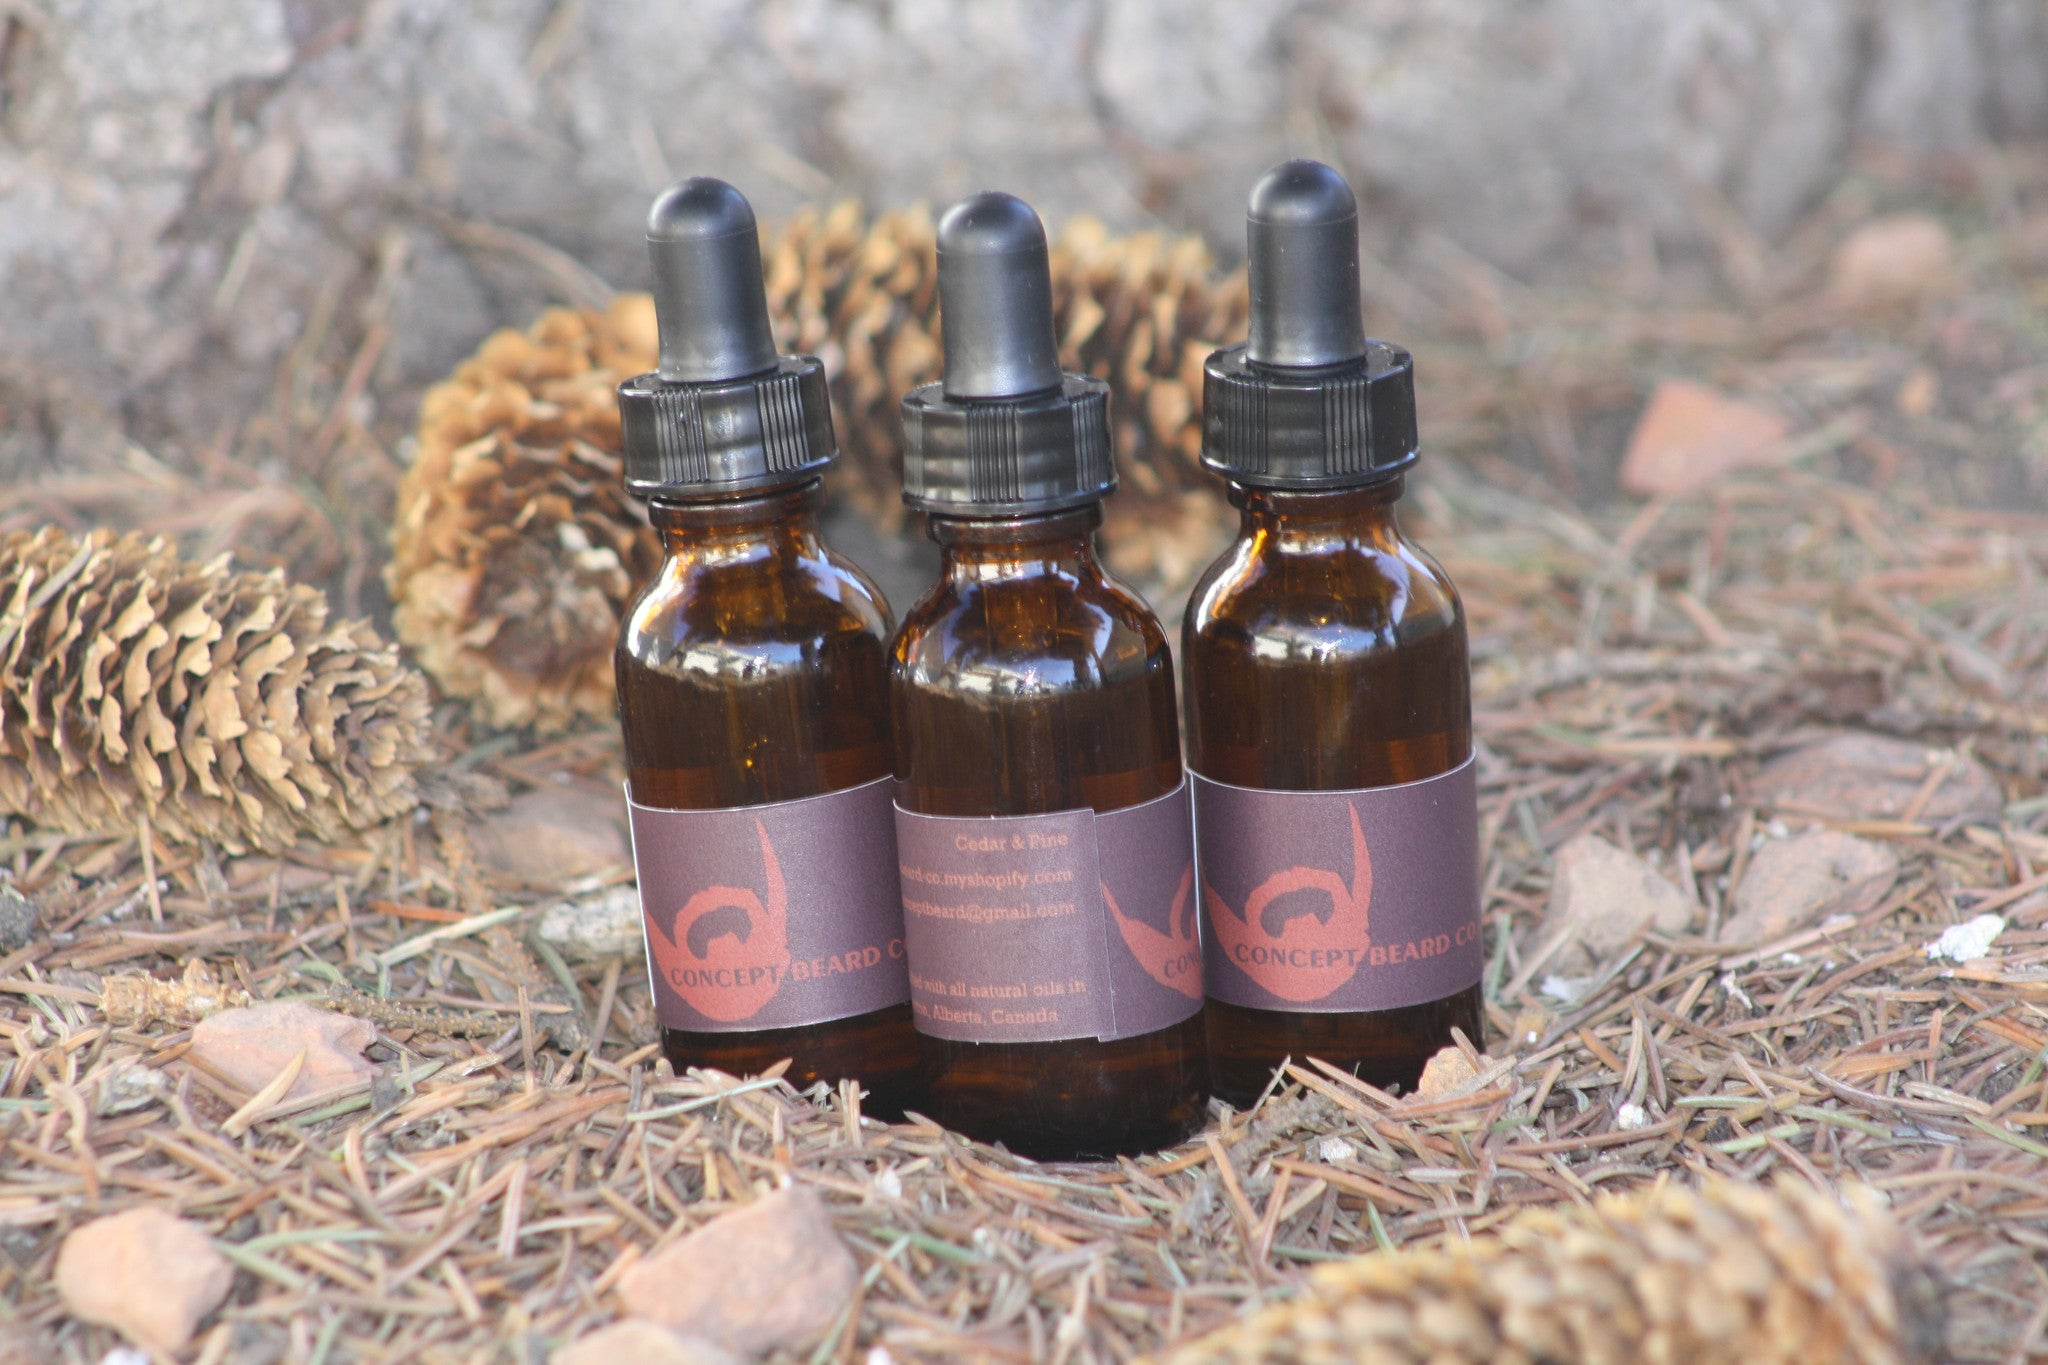 Cedar & Pine Beard Oil 1oz